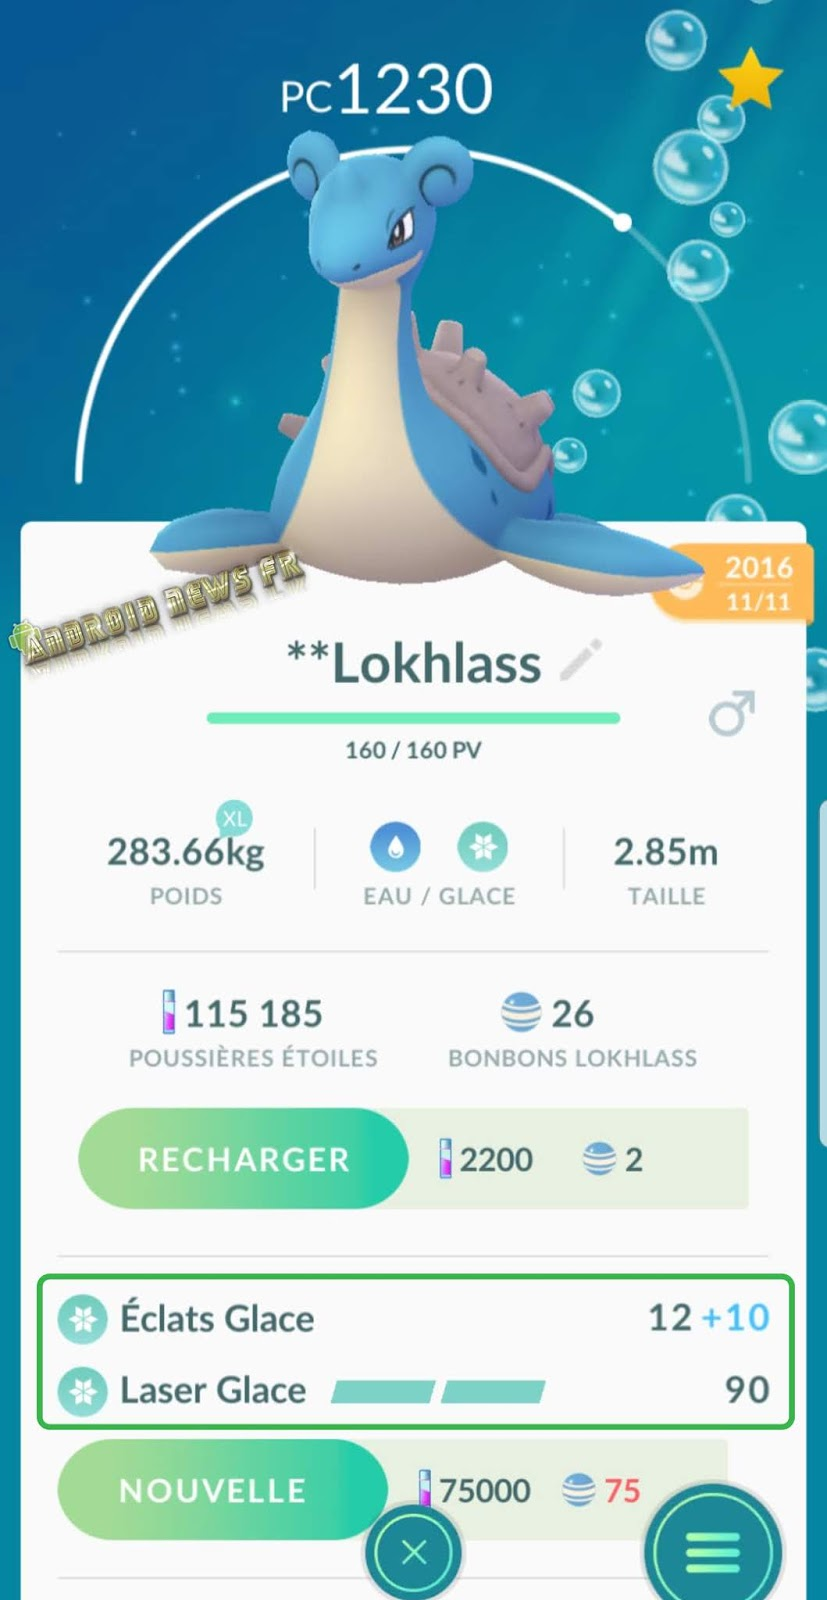 Lokhlass,legacy, ultra rare : Eclats Glace, Laser Glace